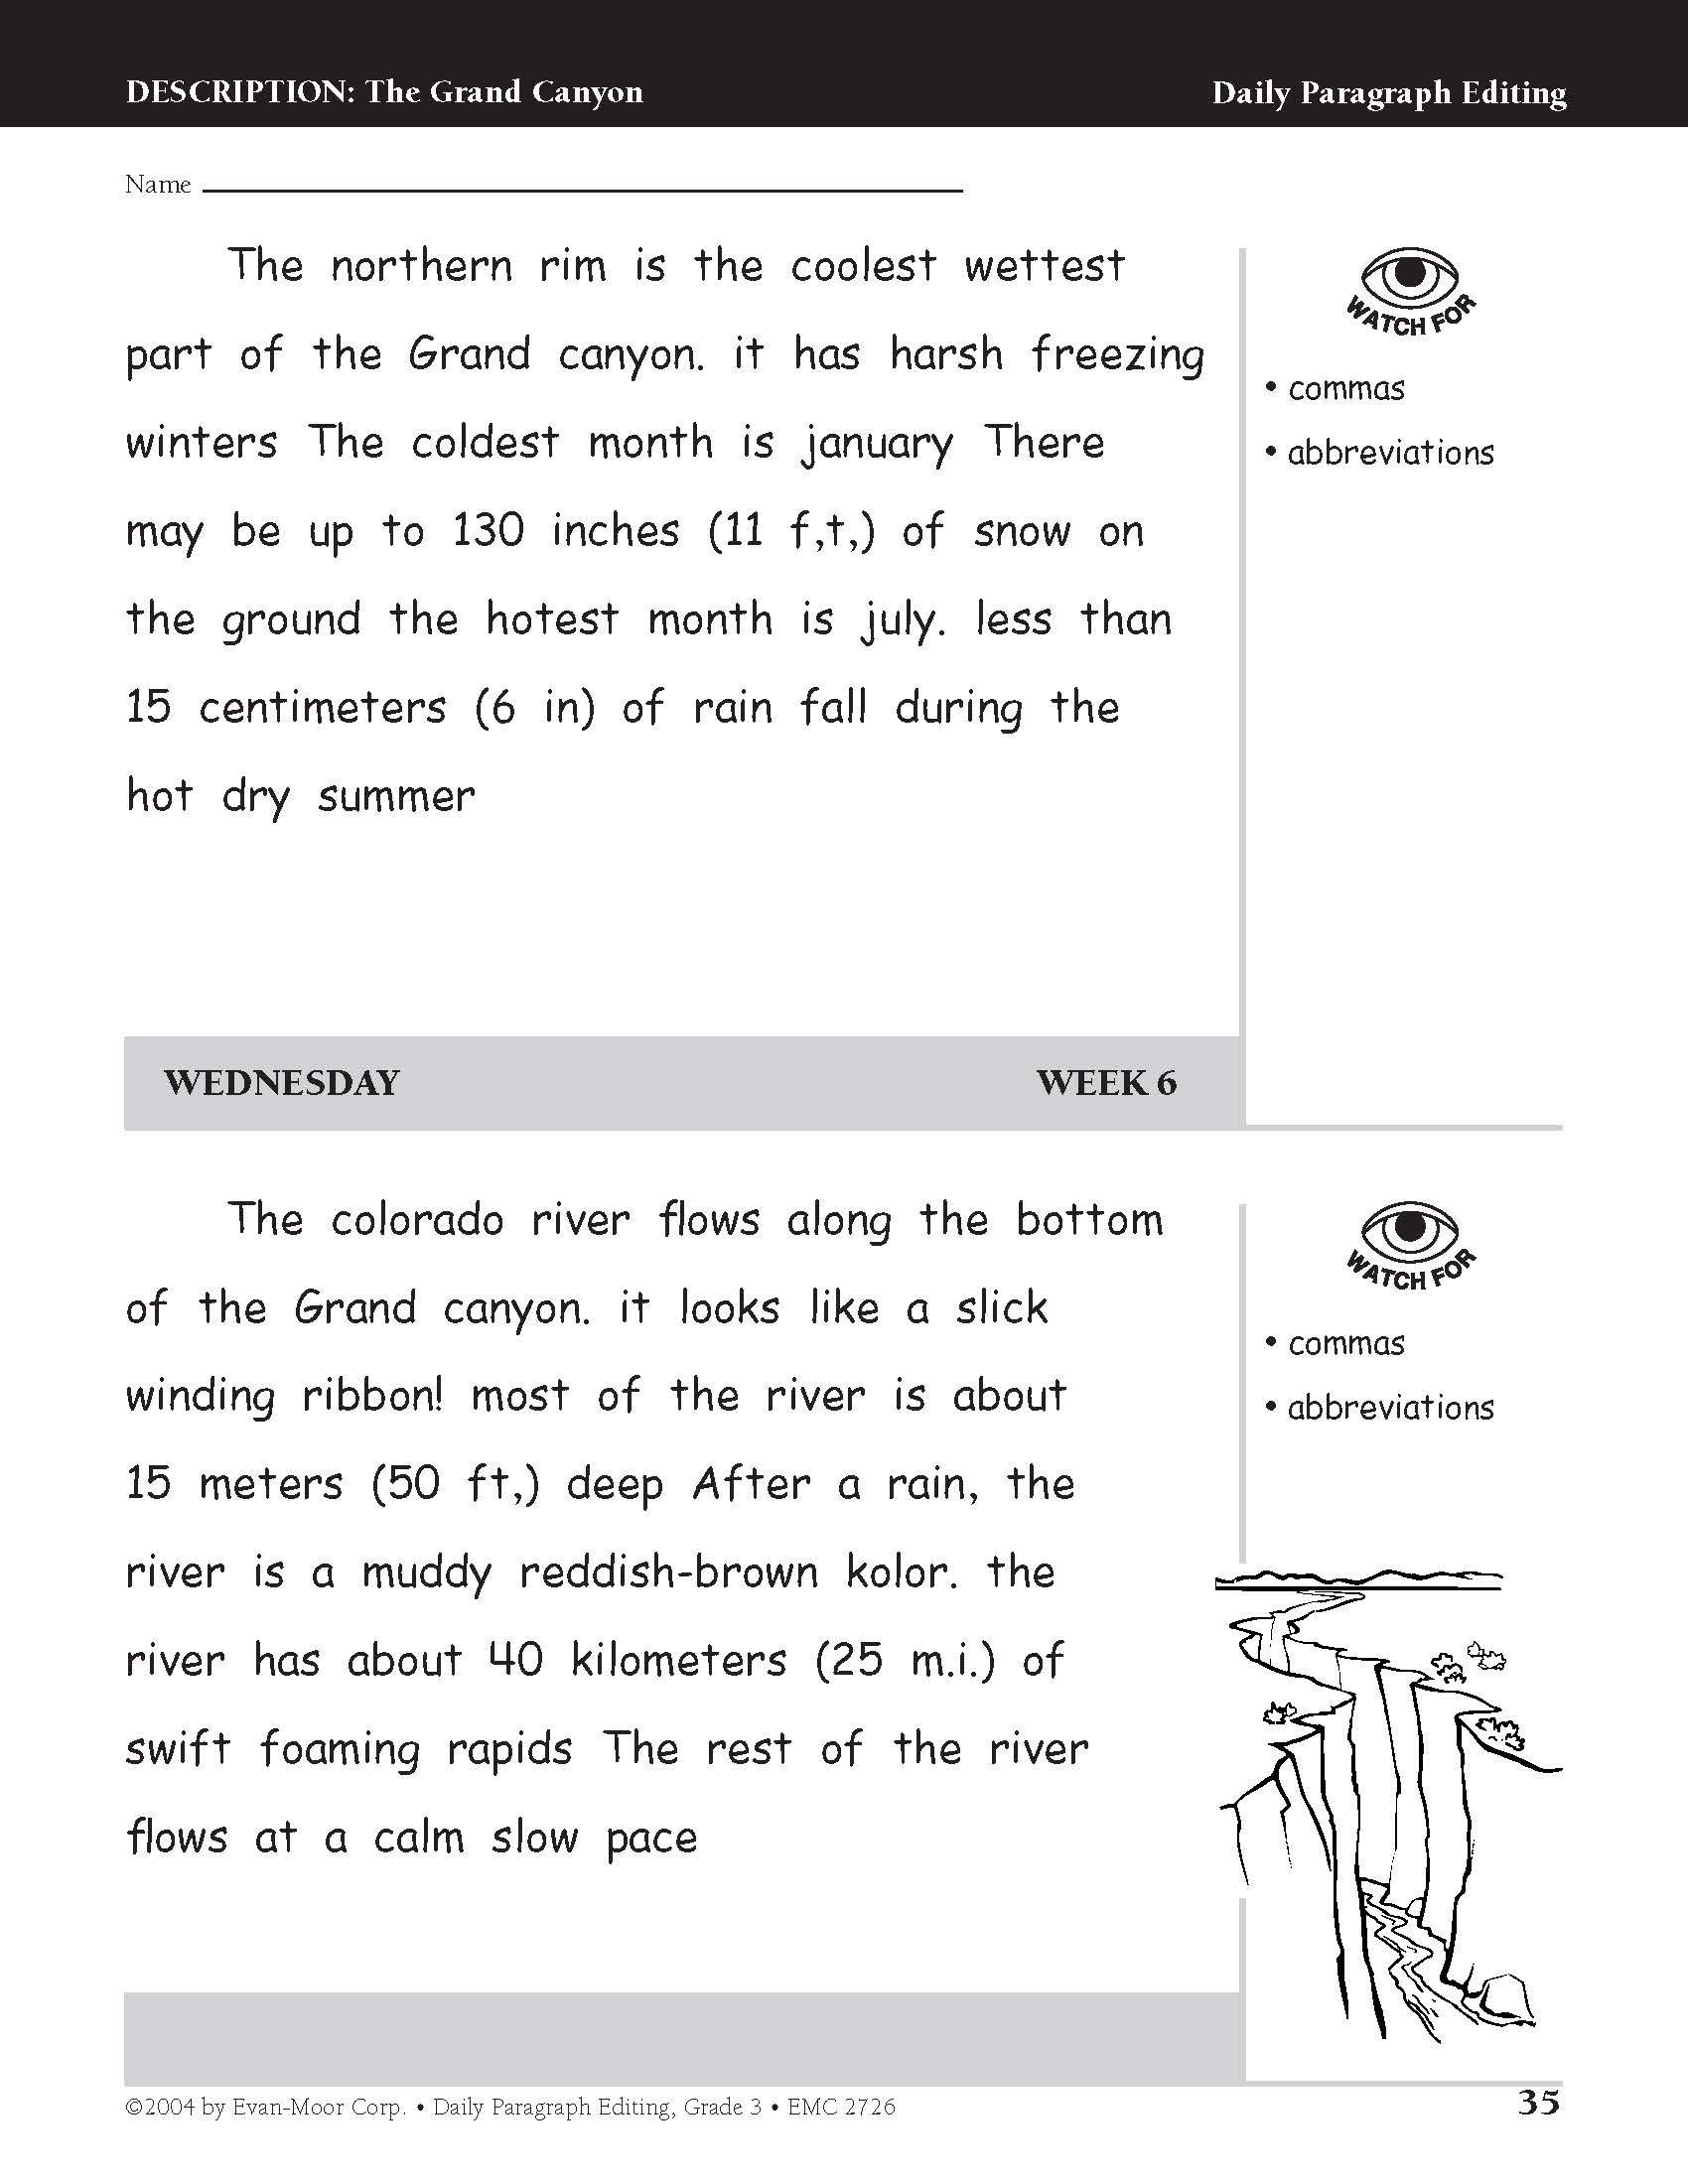 3rd Grade Editing Worksheets Amazon Daily Paragraph Editing Grade 3